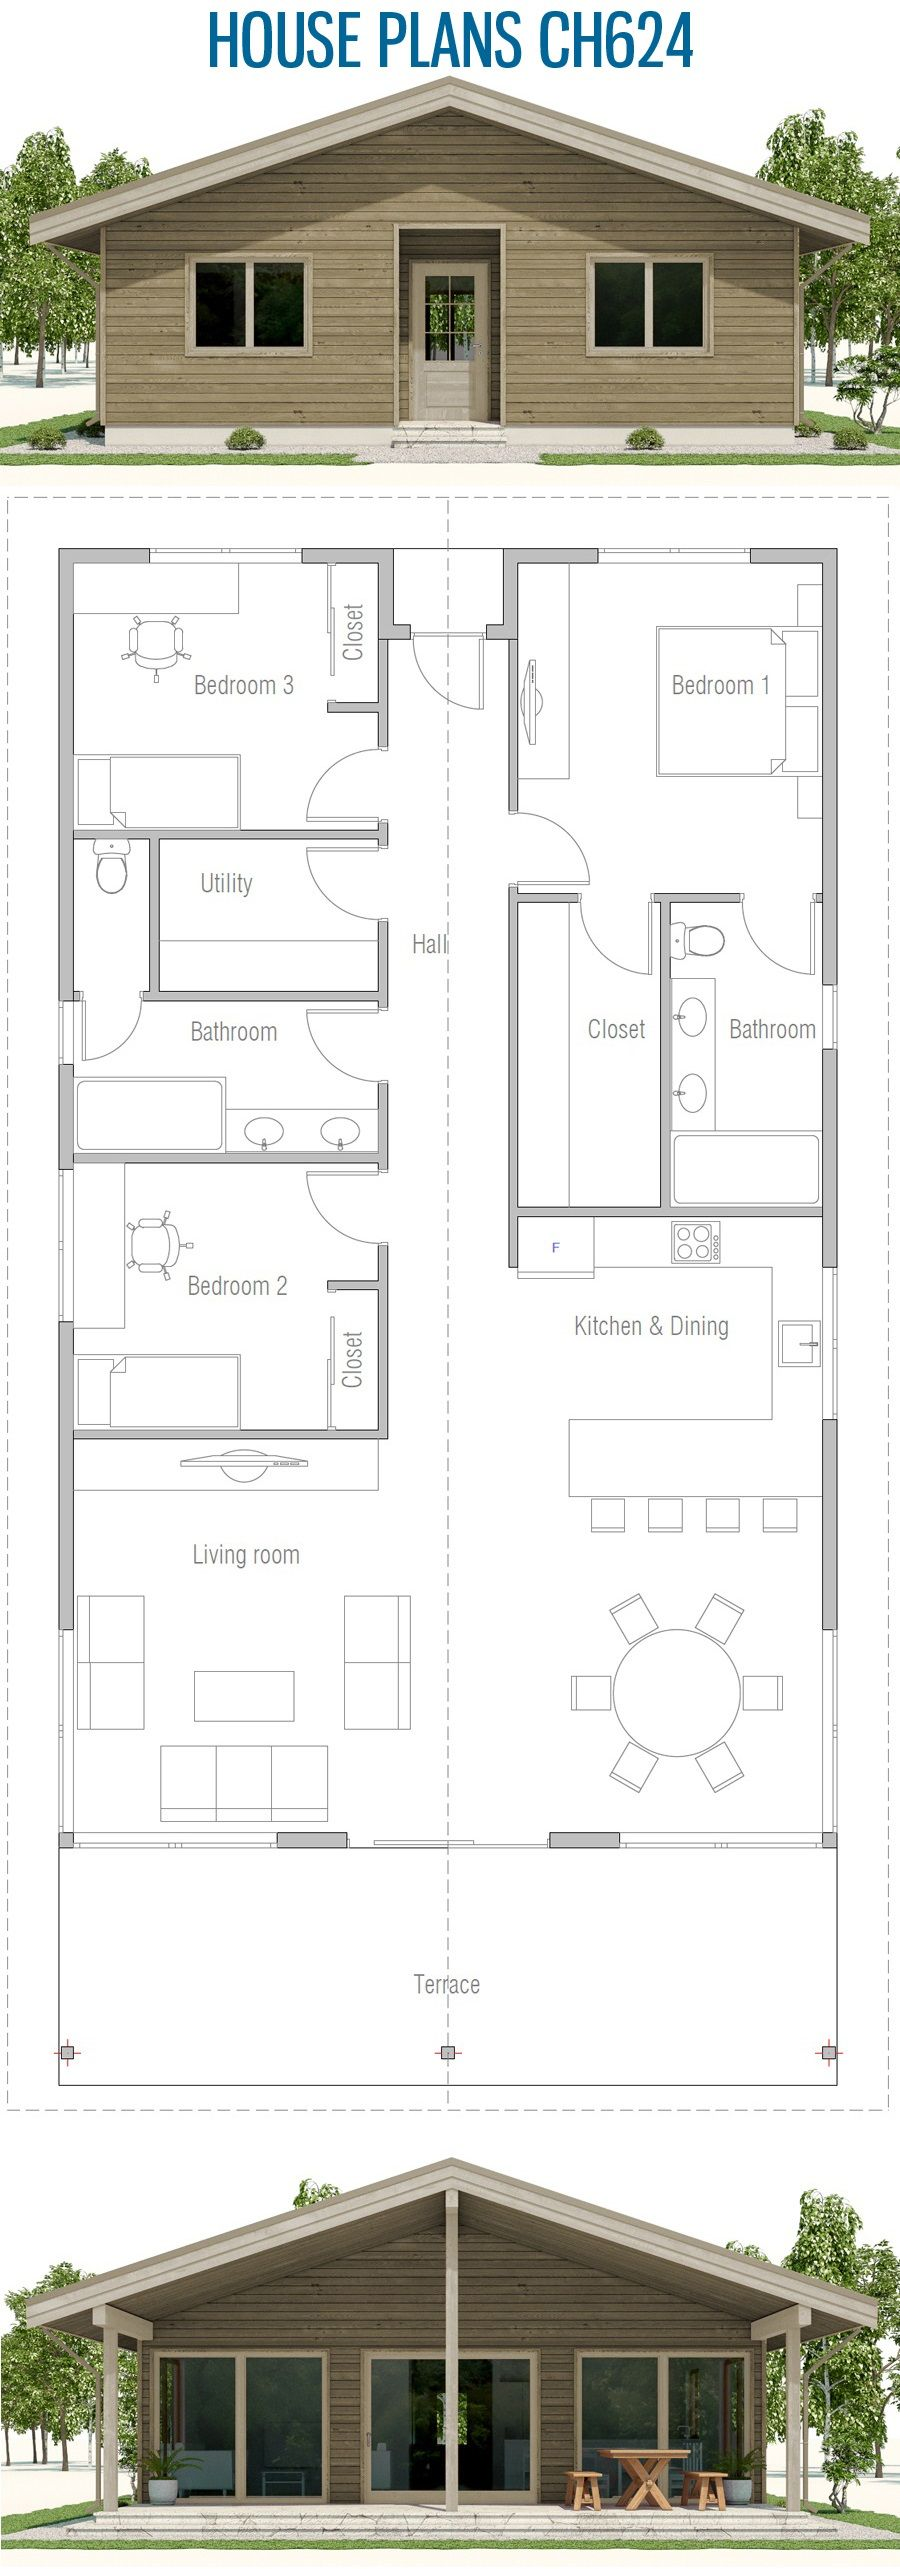 Small House Plan Ch624 My House Plans House Plans Small House Plan